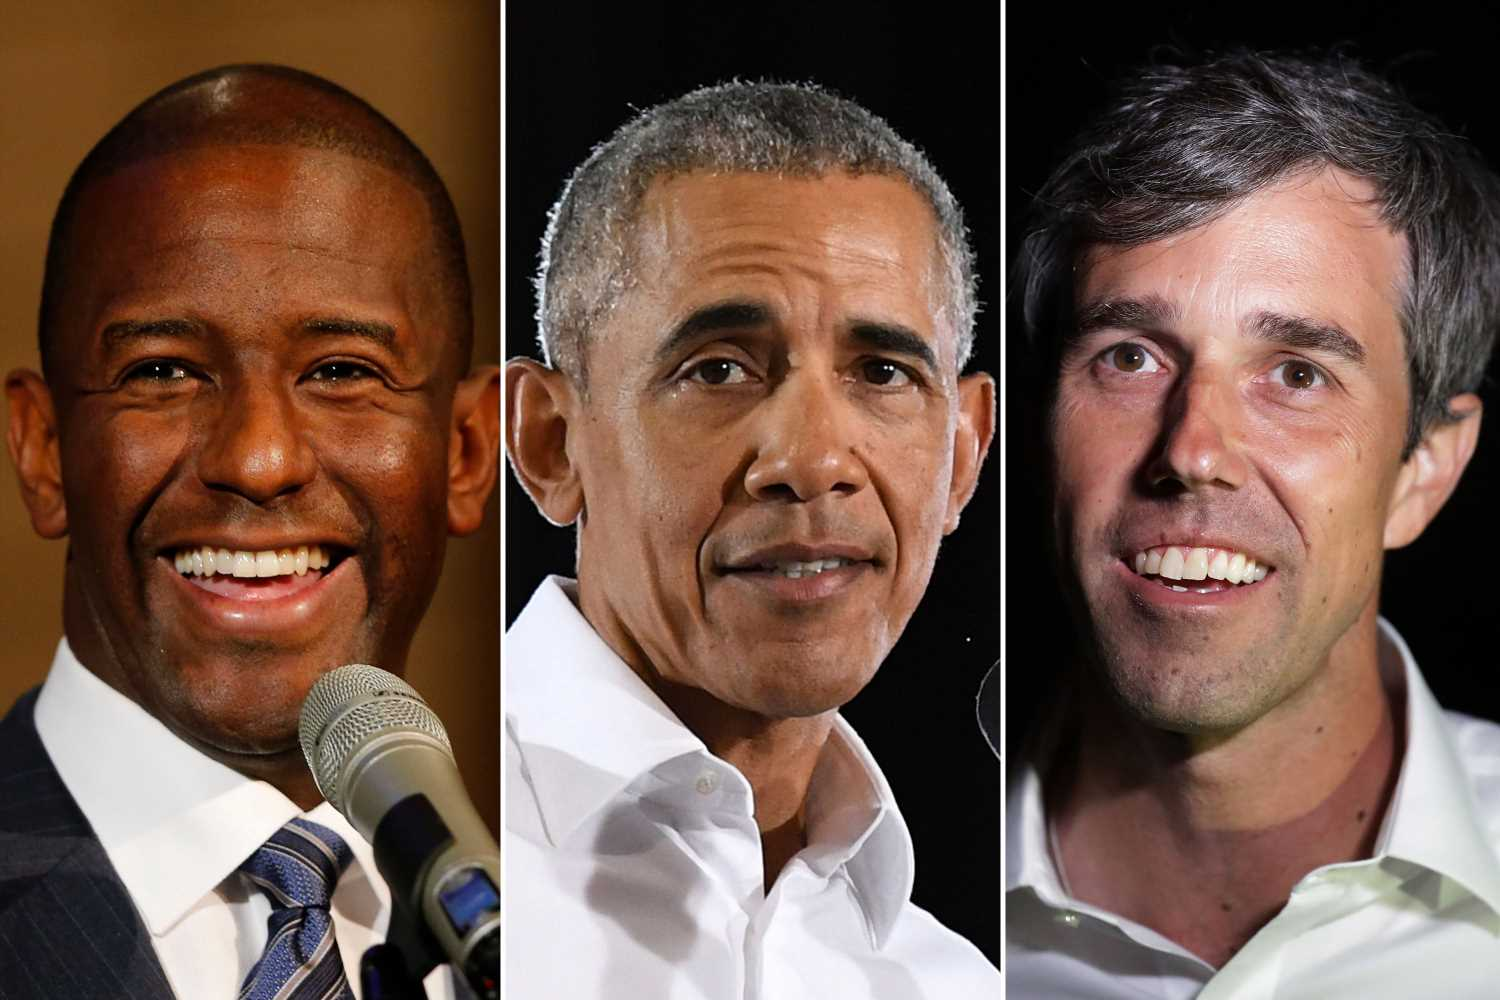 O'Rourke, Gillum meet with Obama, sparking 2020 rumors